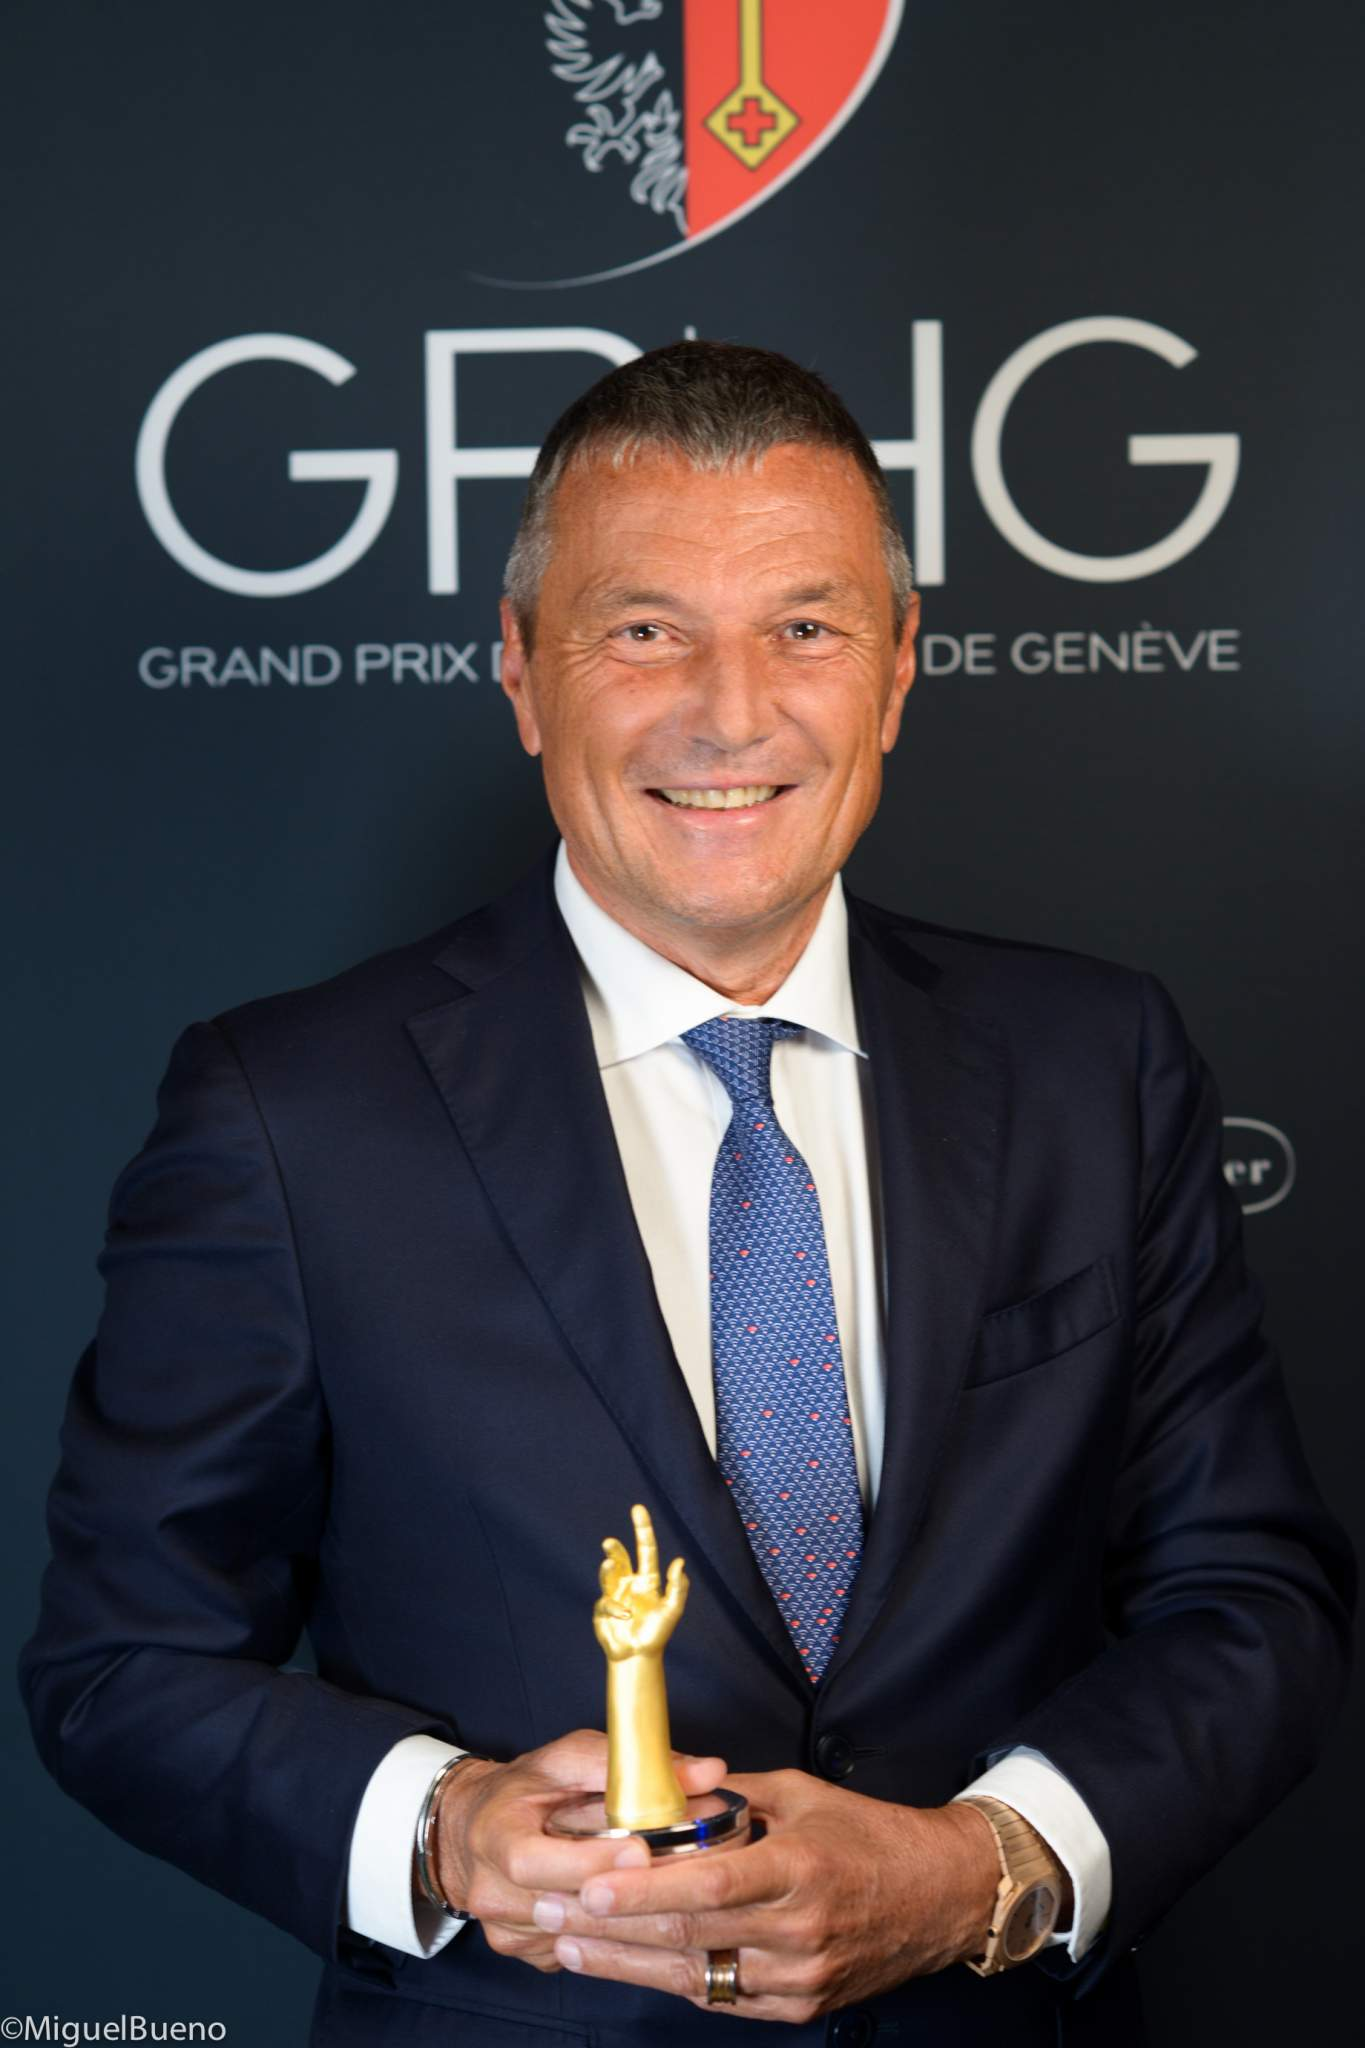 CEO of Bulgari, winner of the Chronograph Watch Prize 2019